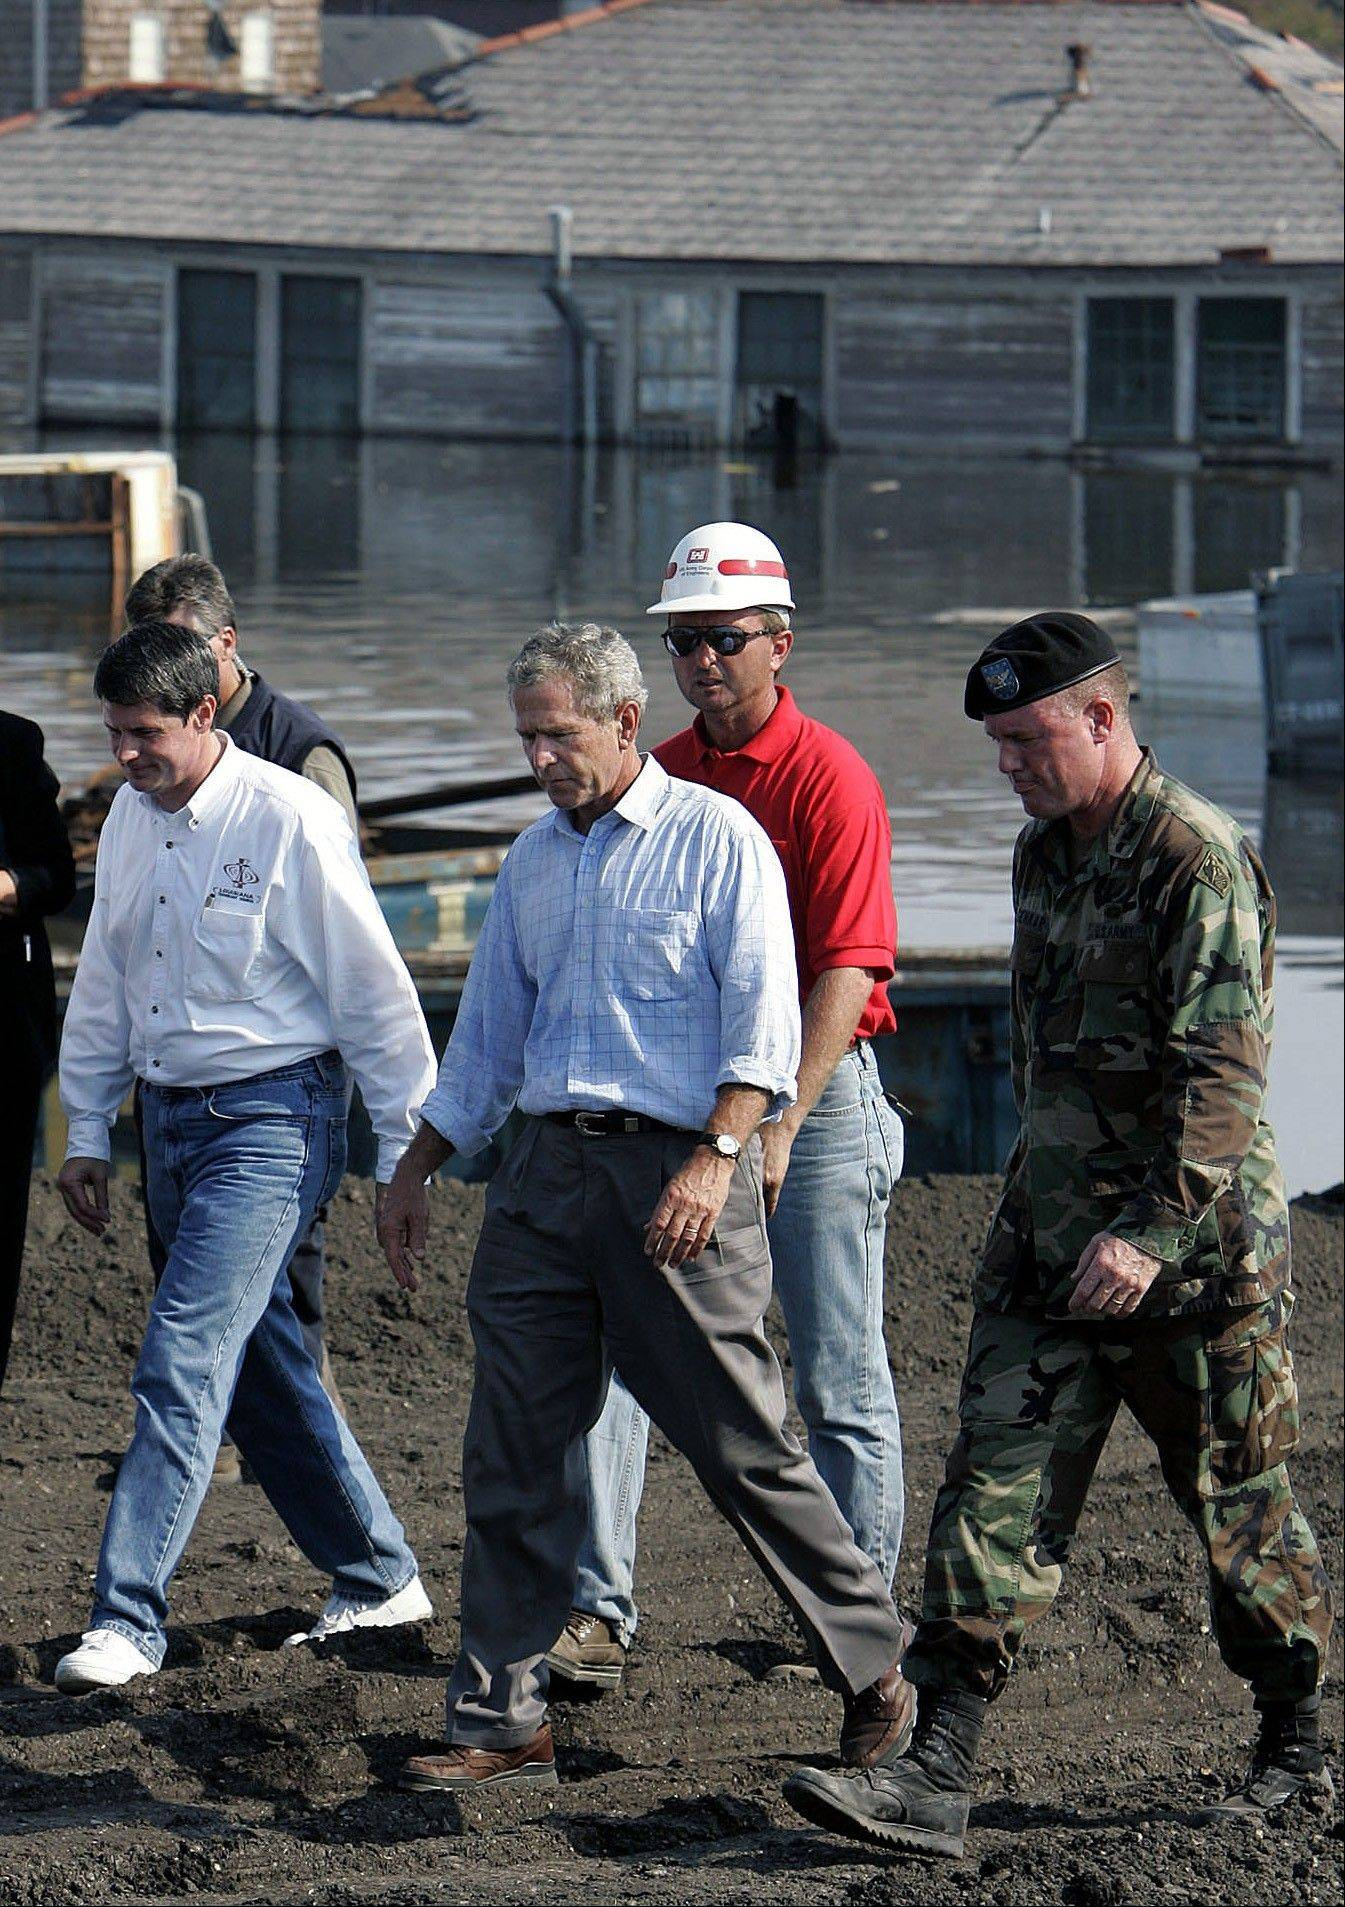 In this Sept. 2, 2005, file photo, President George Bush tours of a flooded area of New Orleans near the Seventeenth Street levee damaged by Hurricane Katrina. President Barack Obama tweaked his travel plans to head to Louisiana on Monday, Sept. 3, 2012, to see the damage from Hurricane Isaac ahead of his own nominating convention -- shortly after Republican presidential candidate Mitt Romney toured the area.